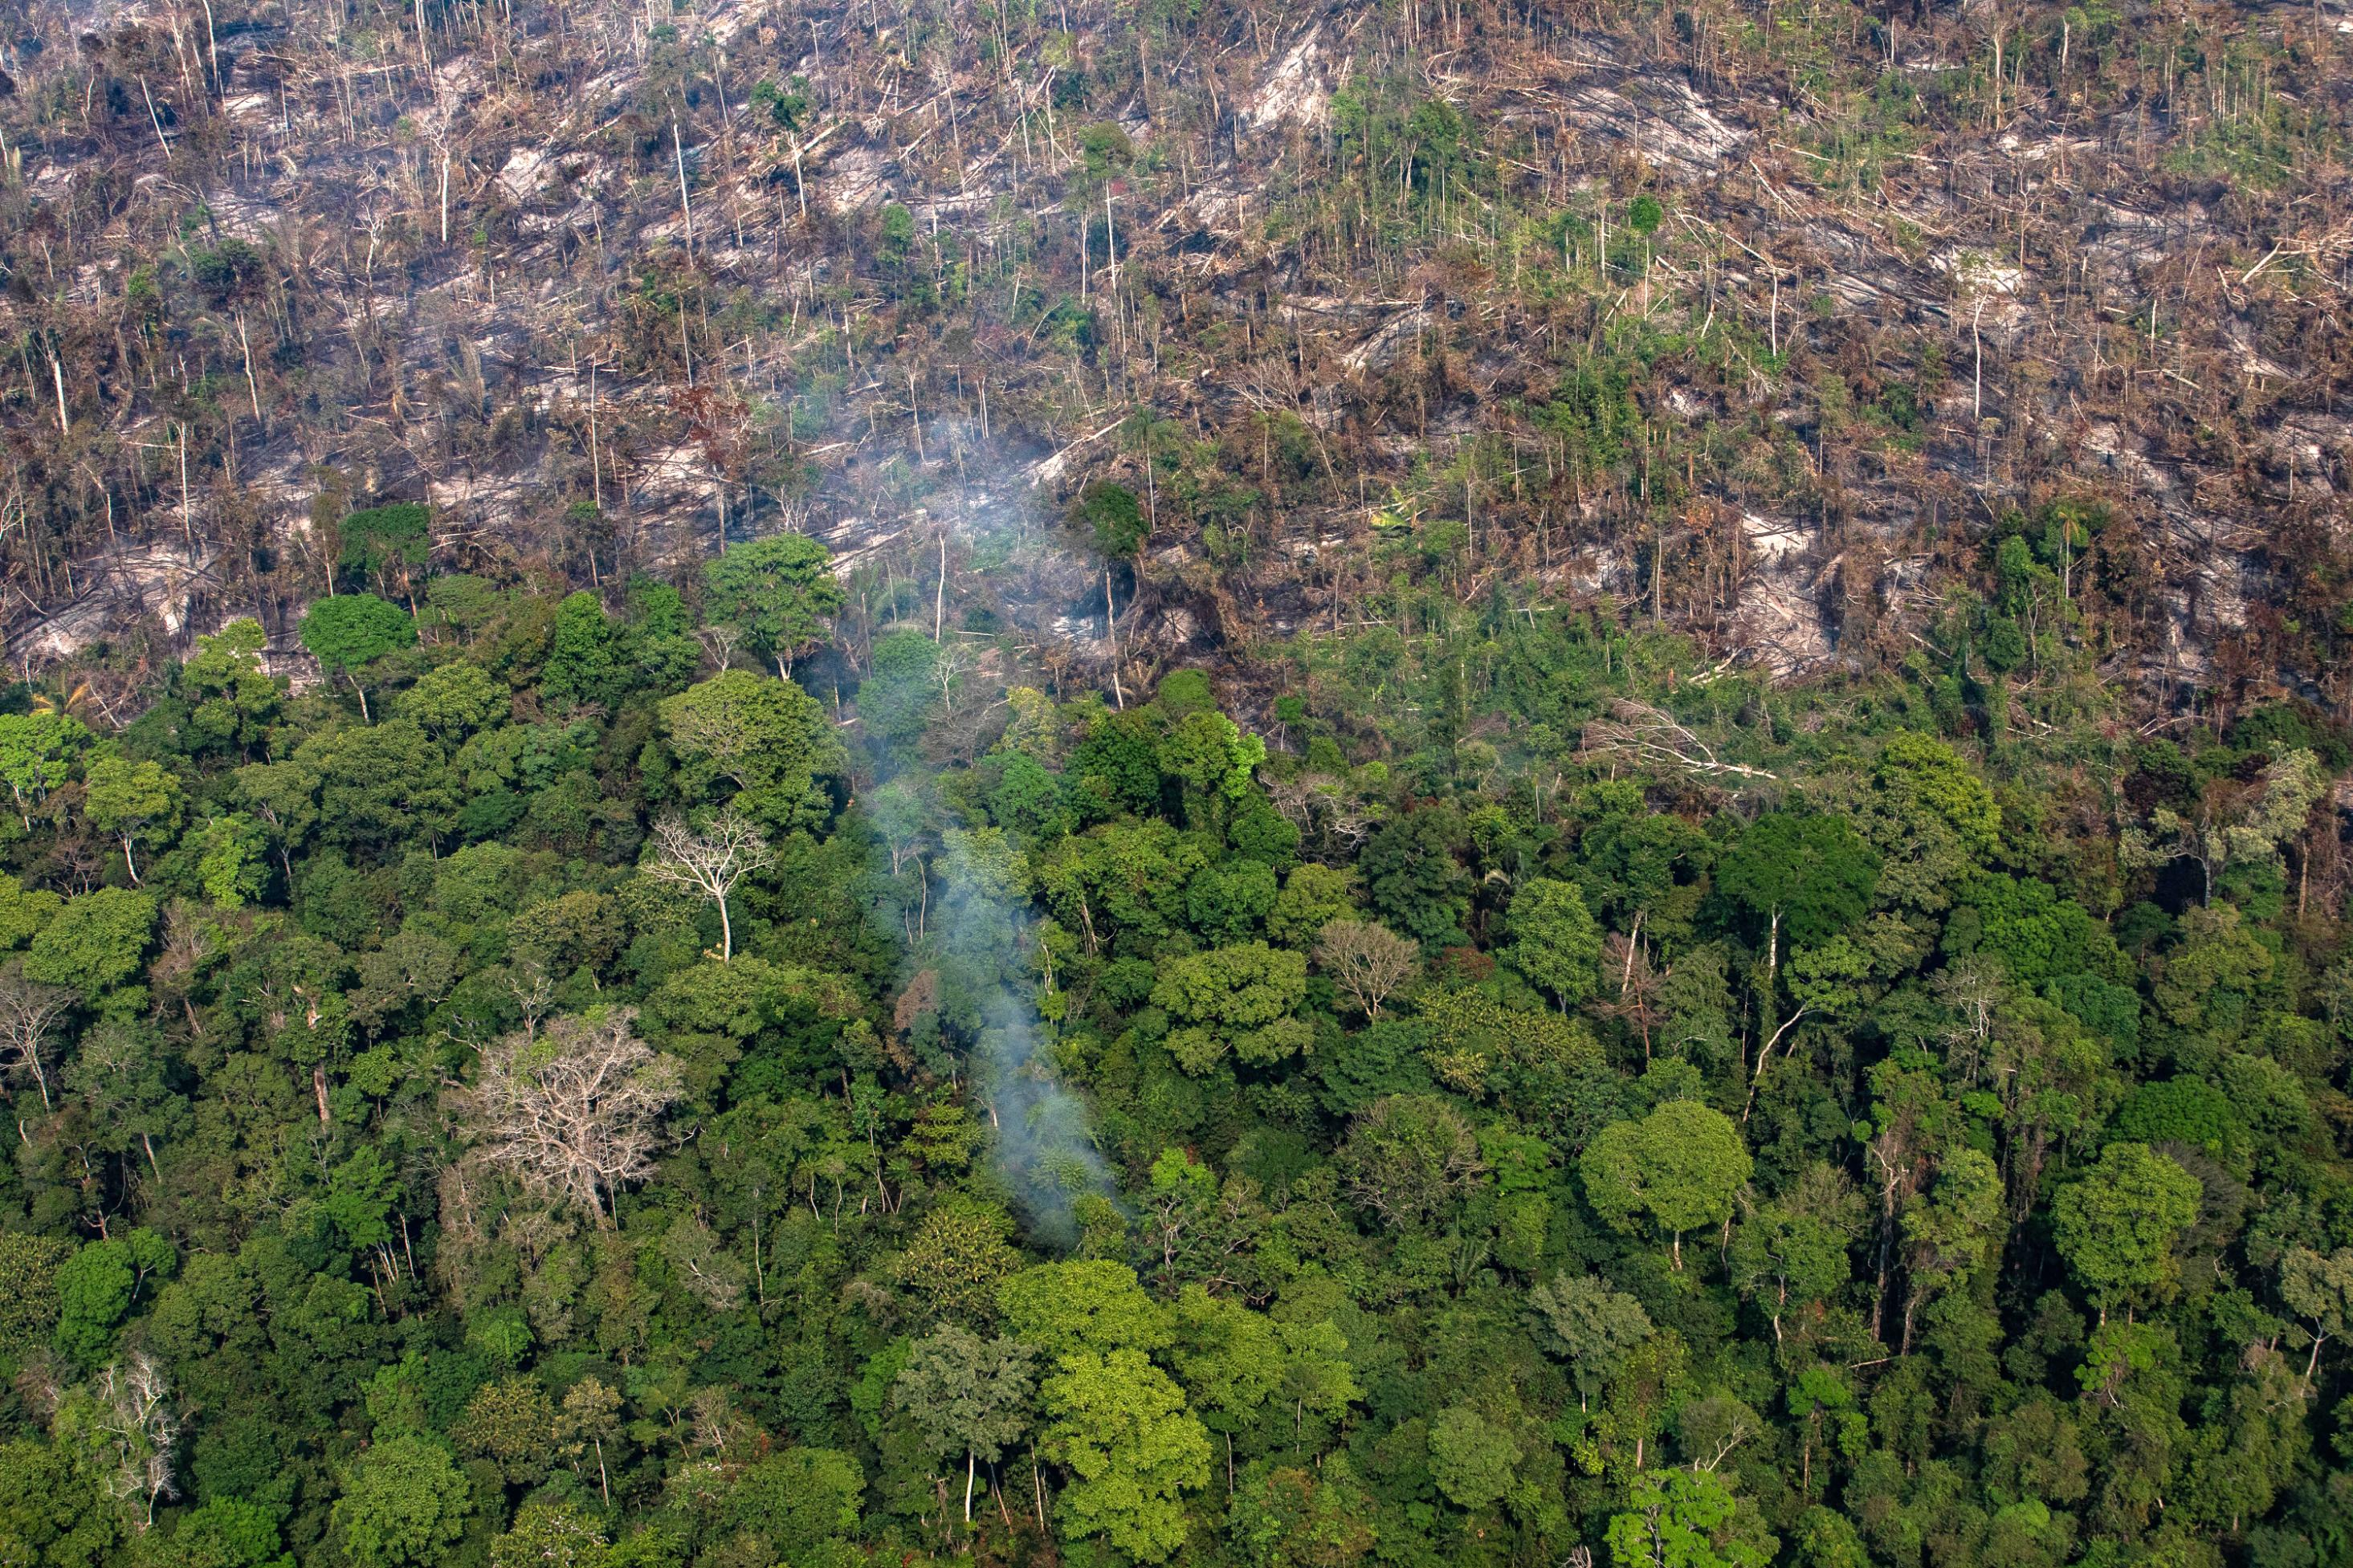 Amazon expert killed with arrow while working to protect uncontacted tribes in Brazil